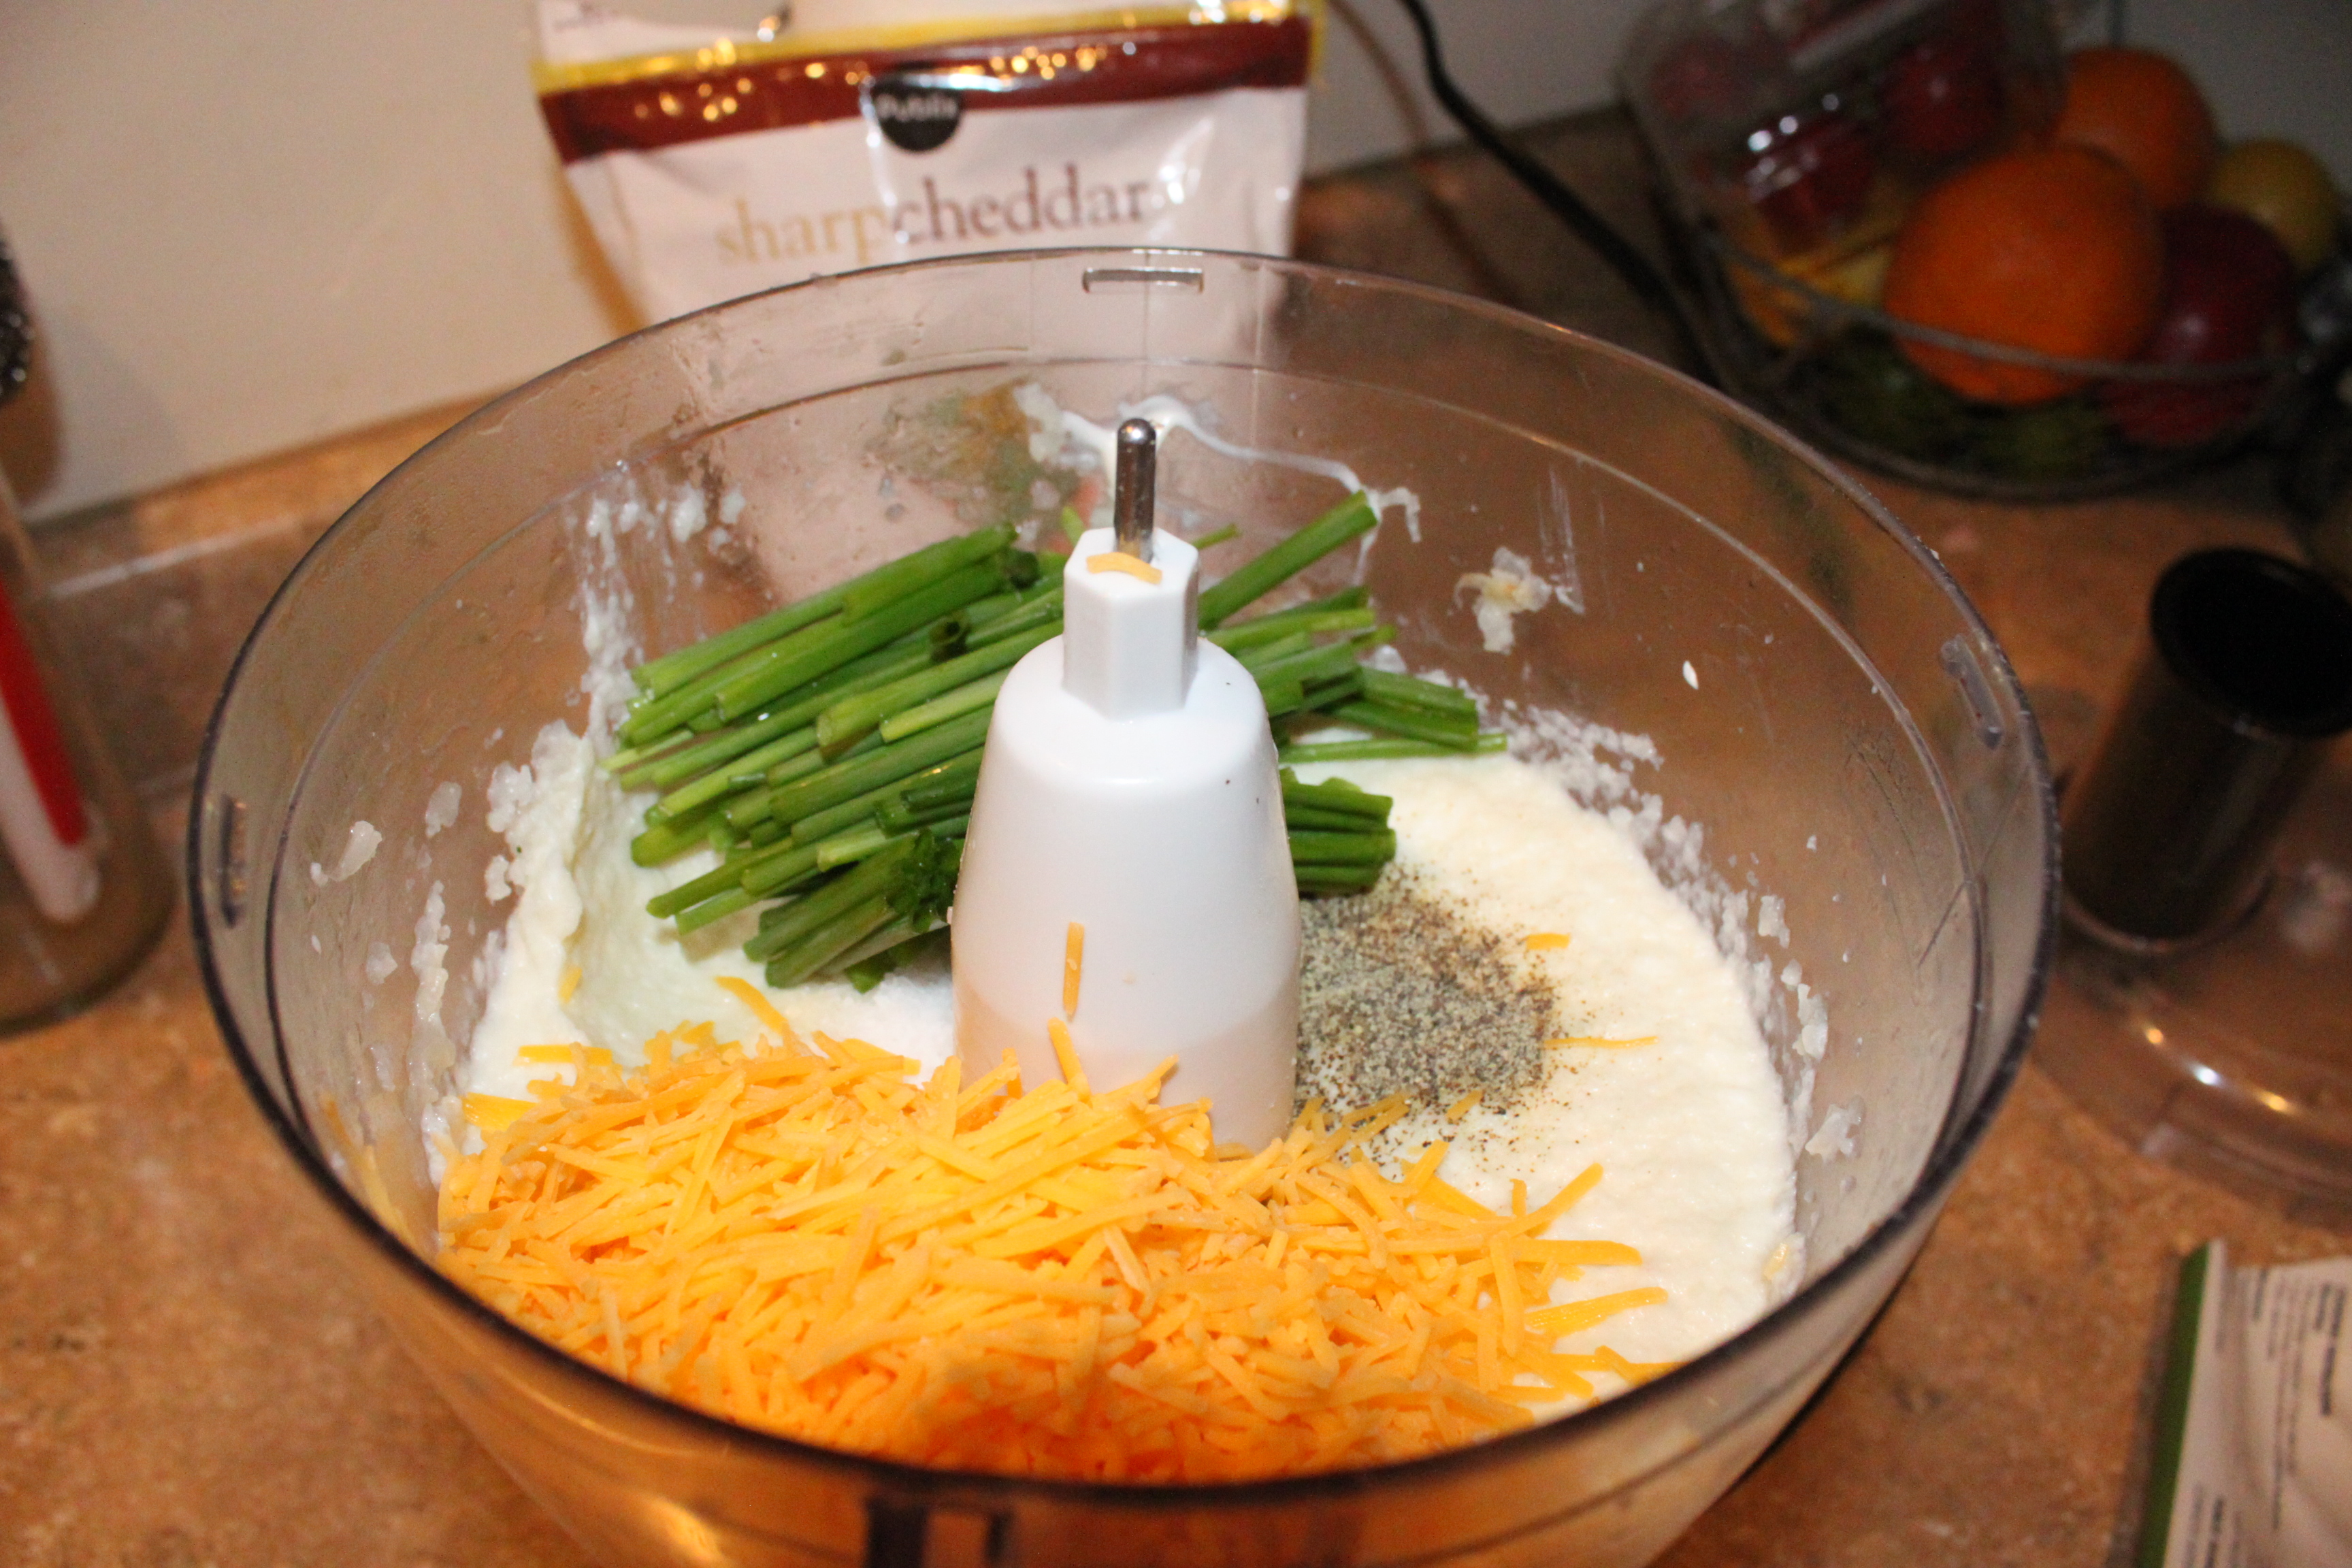 how to make cauliflower mashed potatoes without a food processor